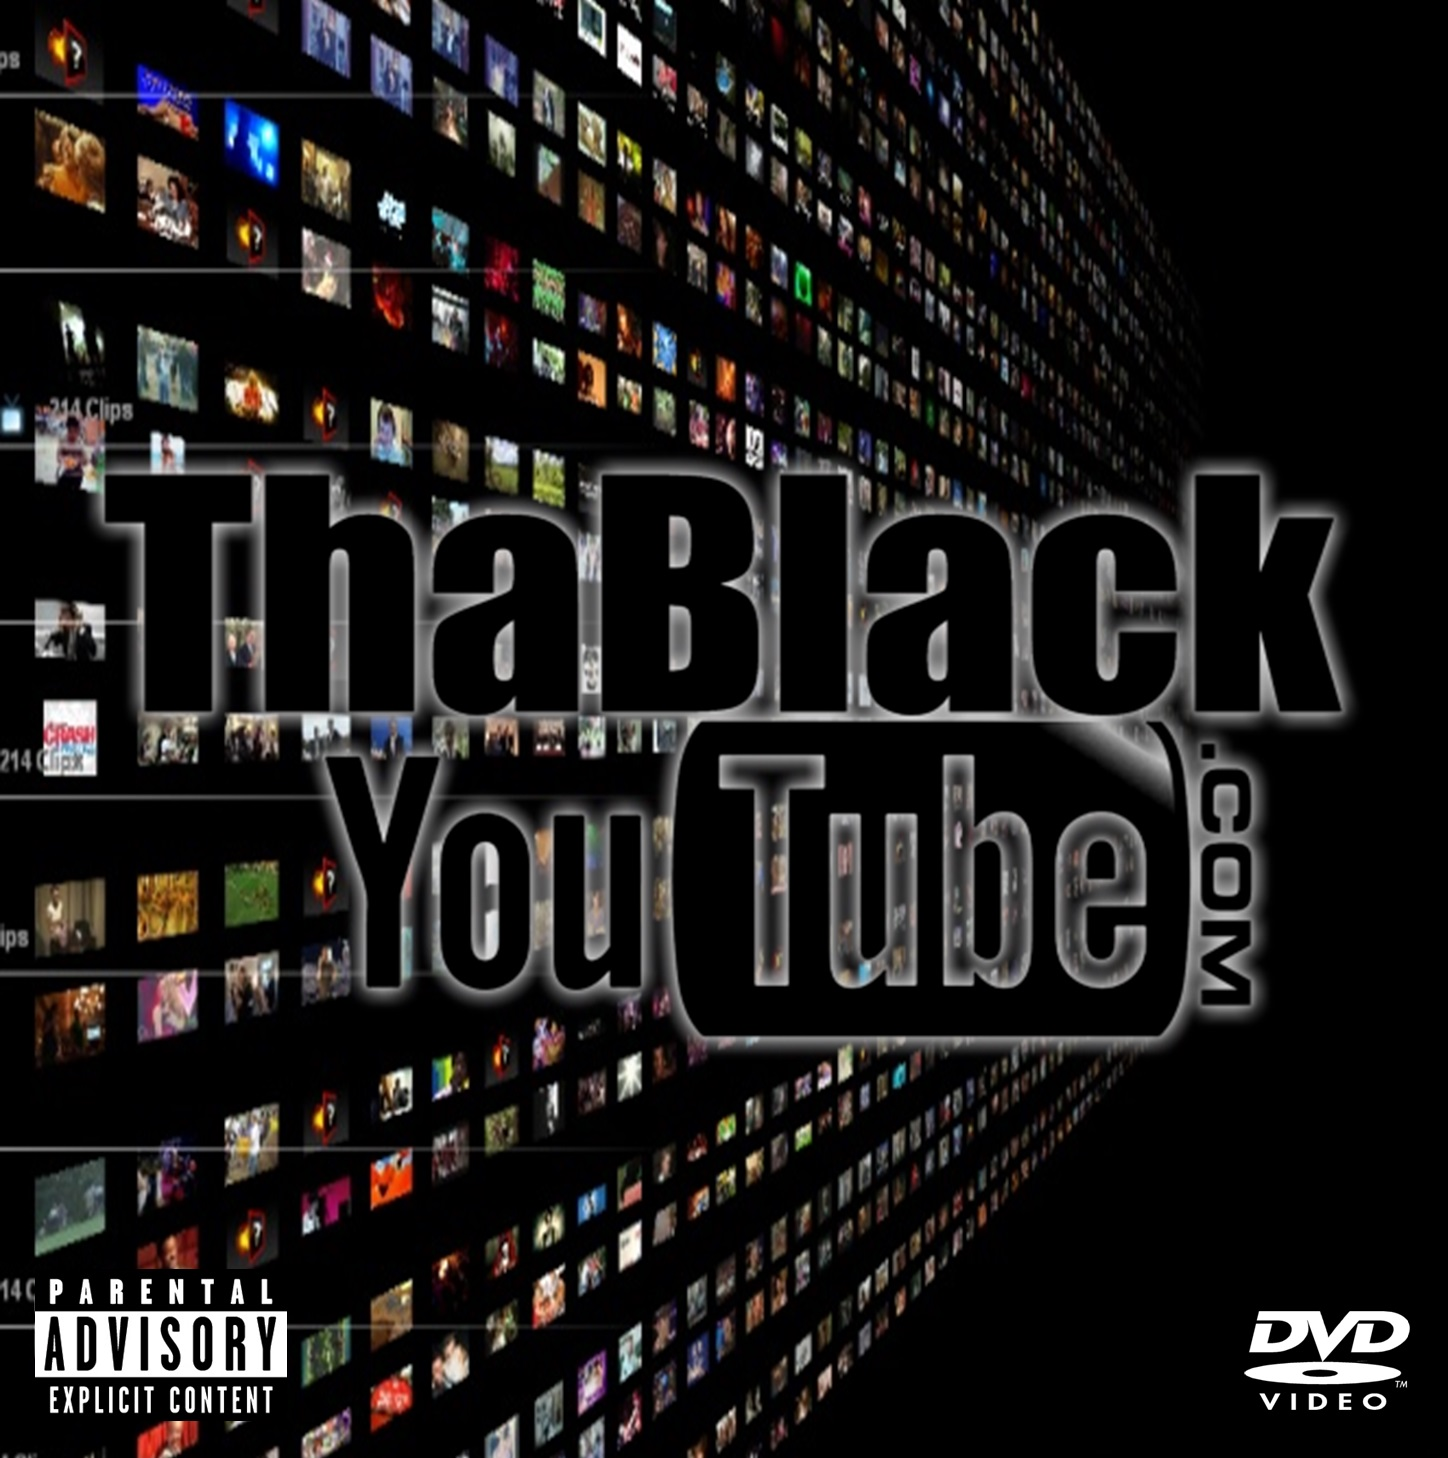 Enter Site www.thablackyoutube.com